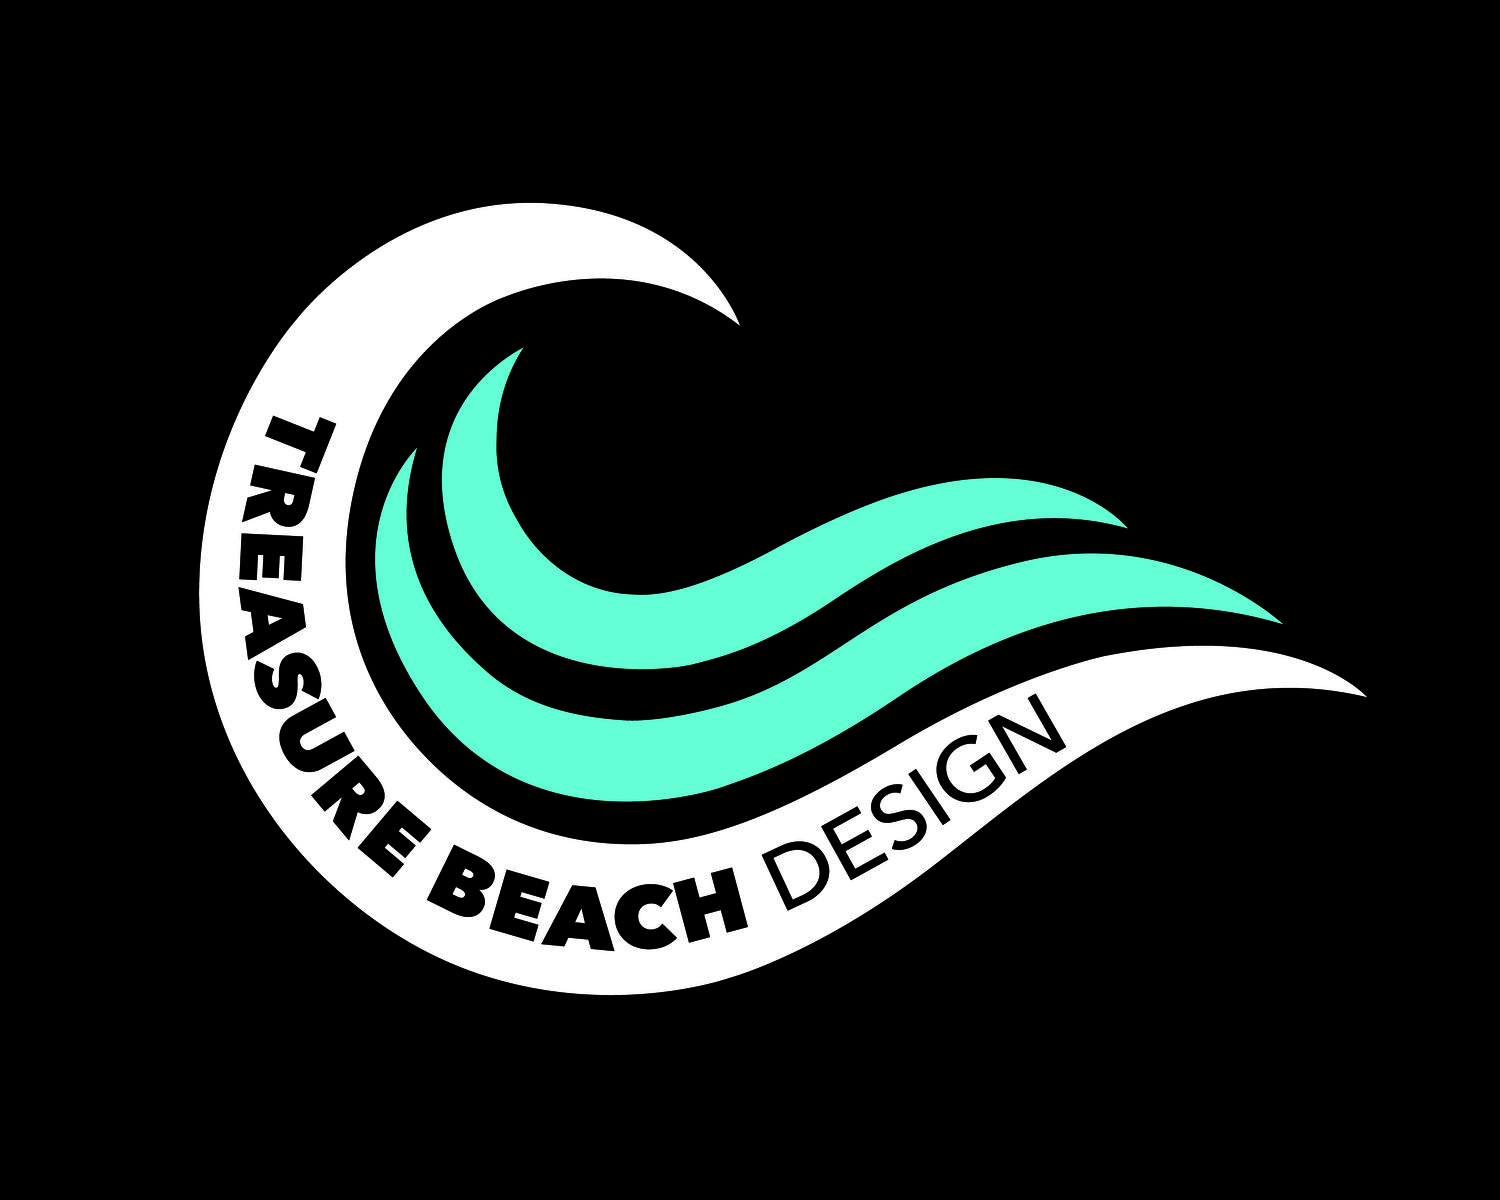 Treasure Beach Design, LLC